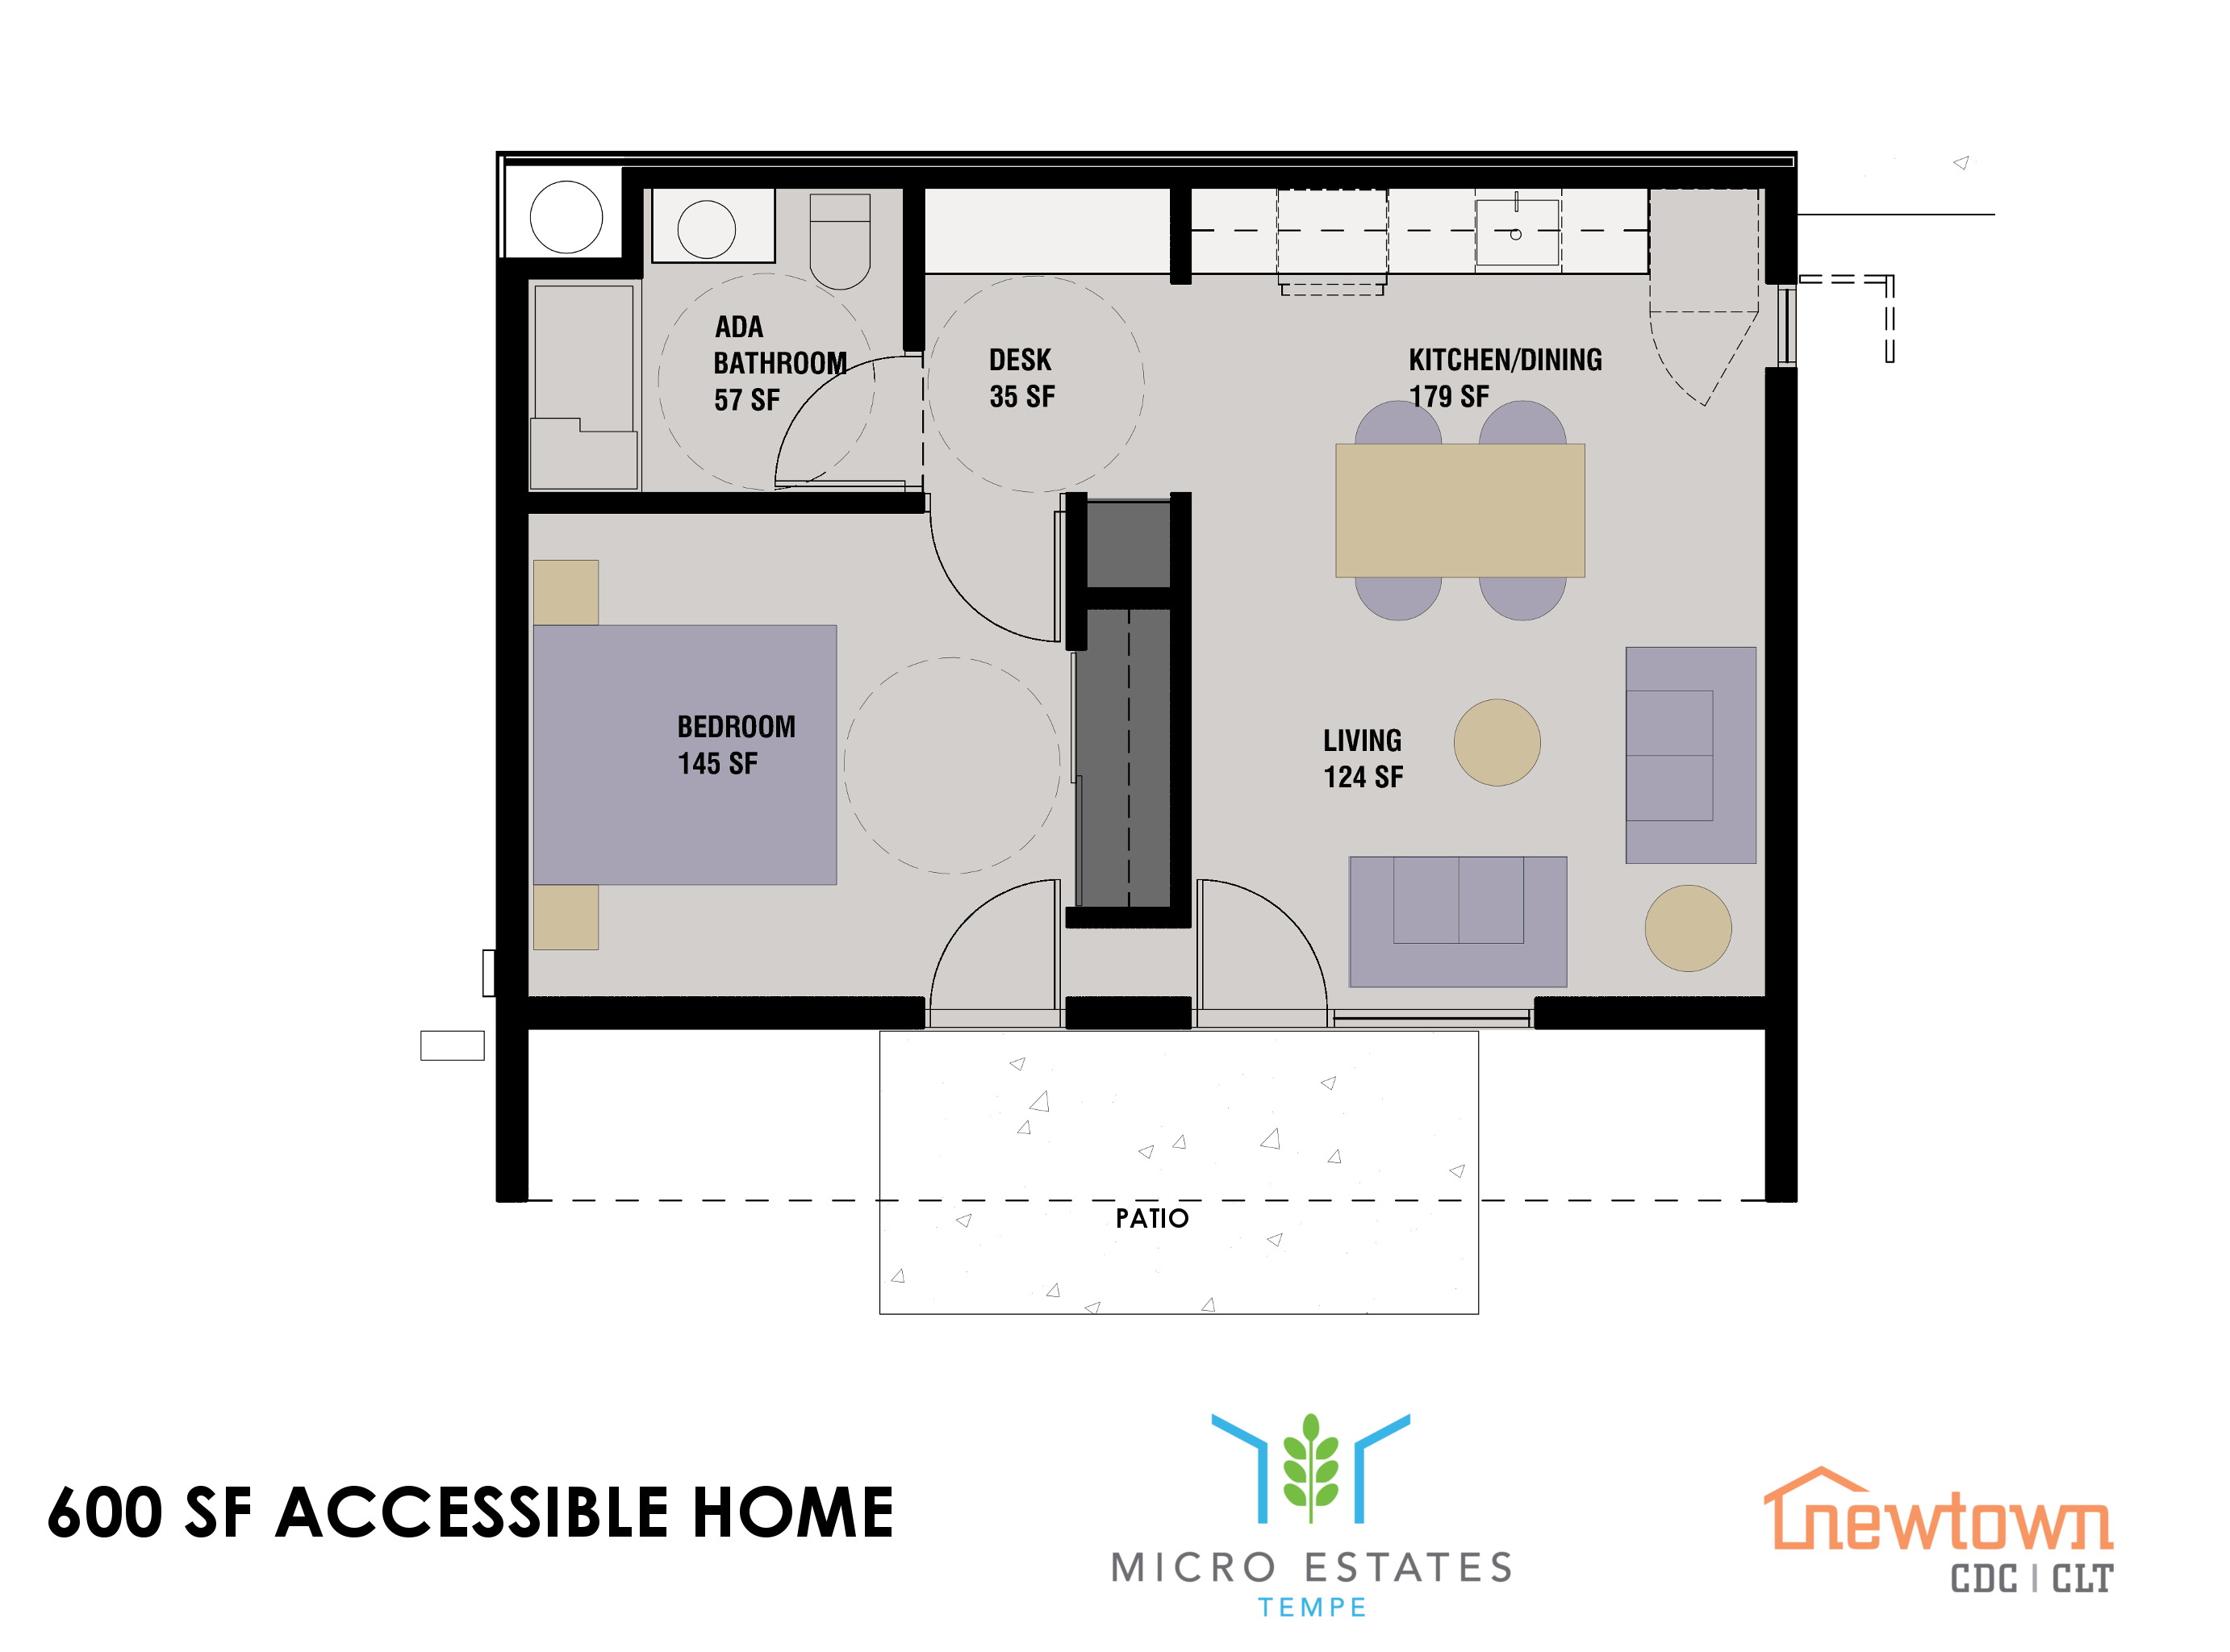 Accessible Home Floor Plan